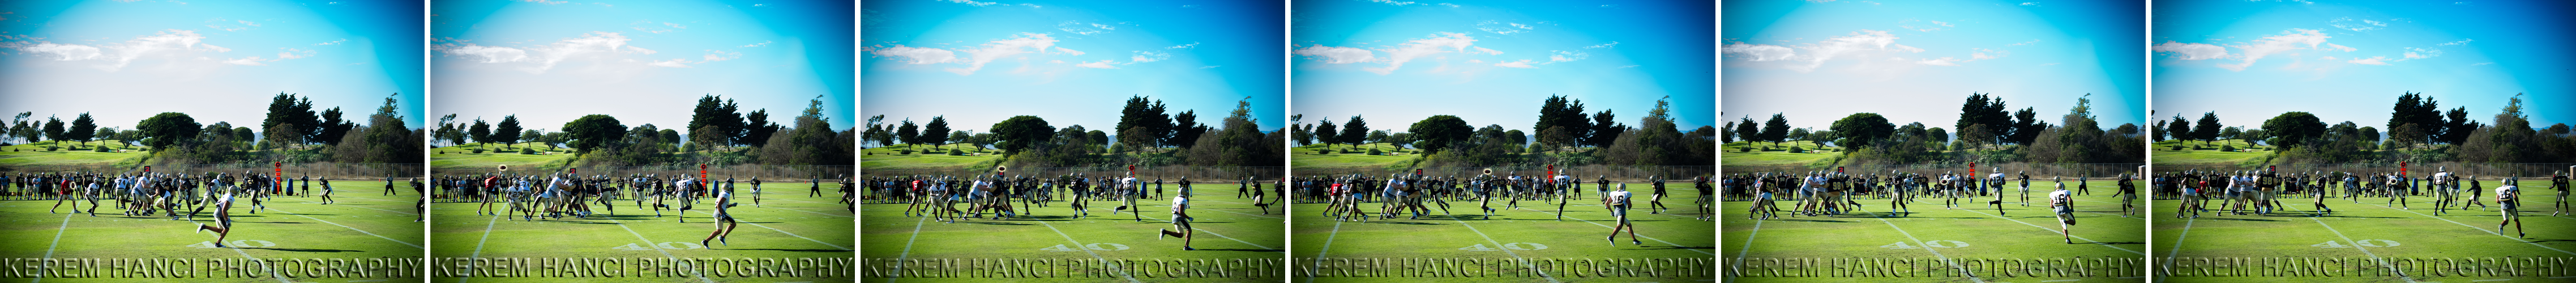 New Orleans Saints' practicing in Oxnard, CA